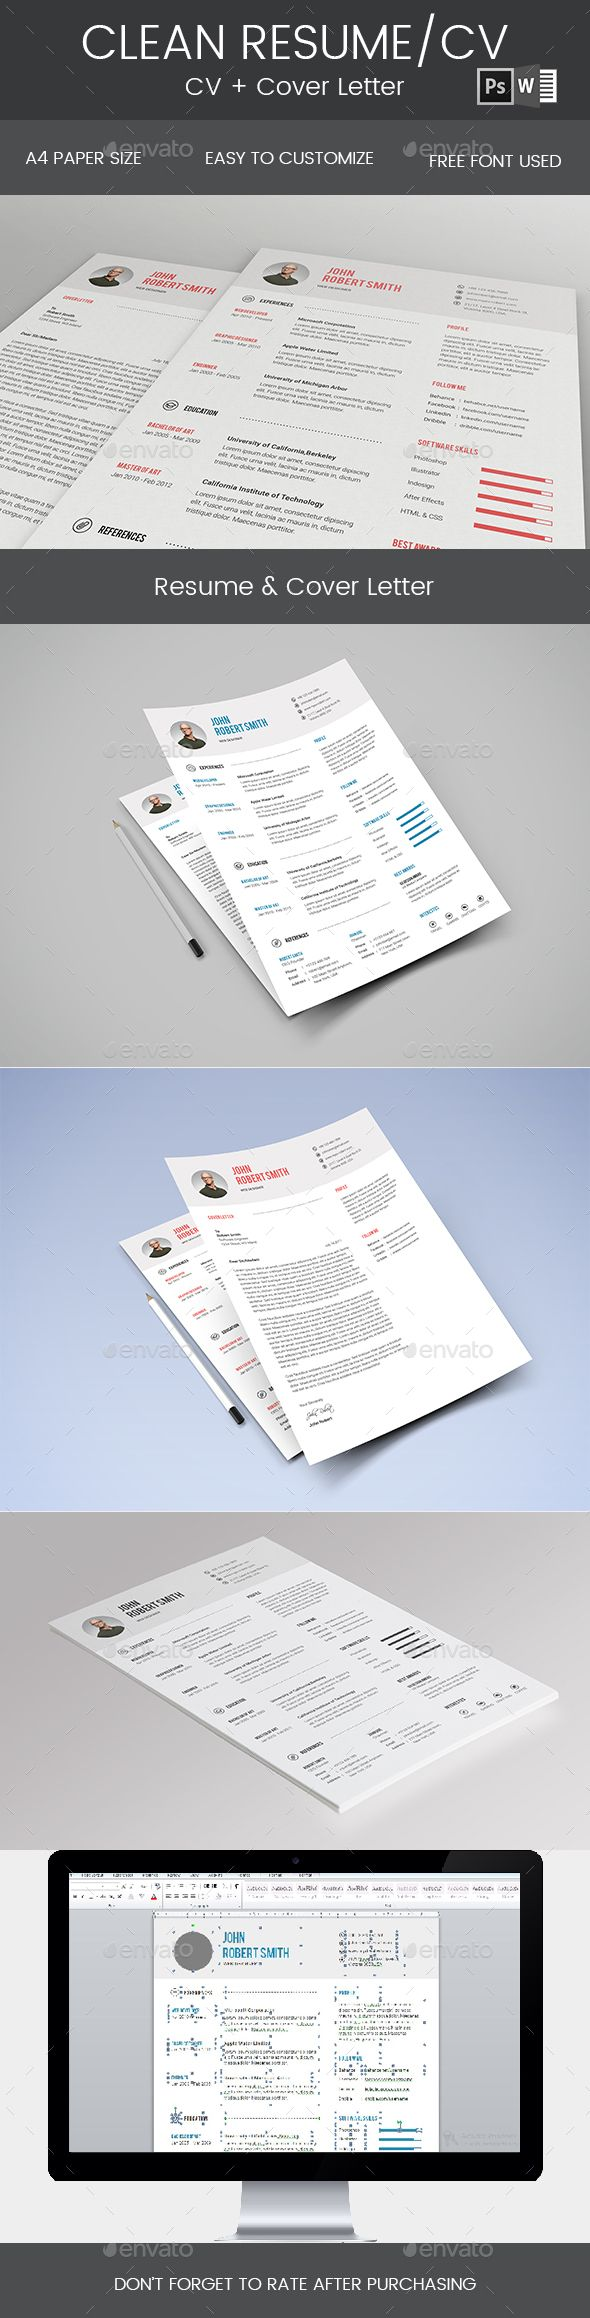 Clean Resume & Cover Letter Template PSD, DOCX & DOC